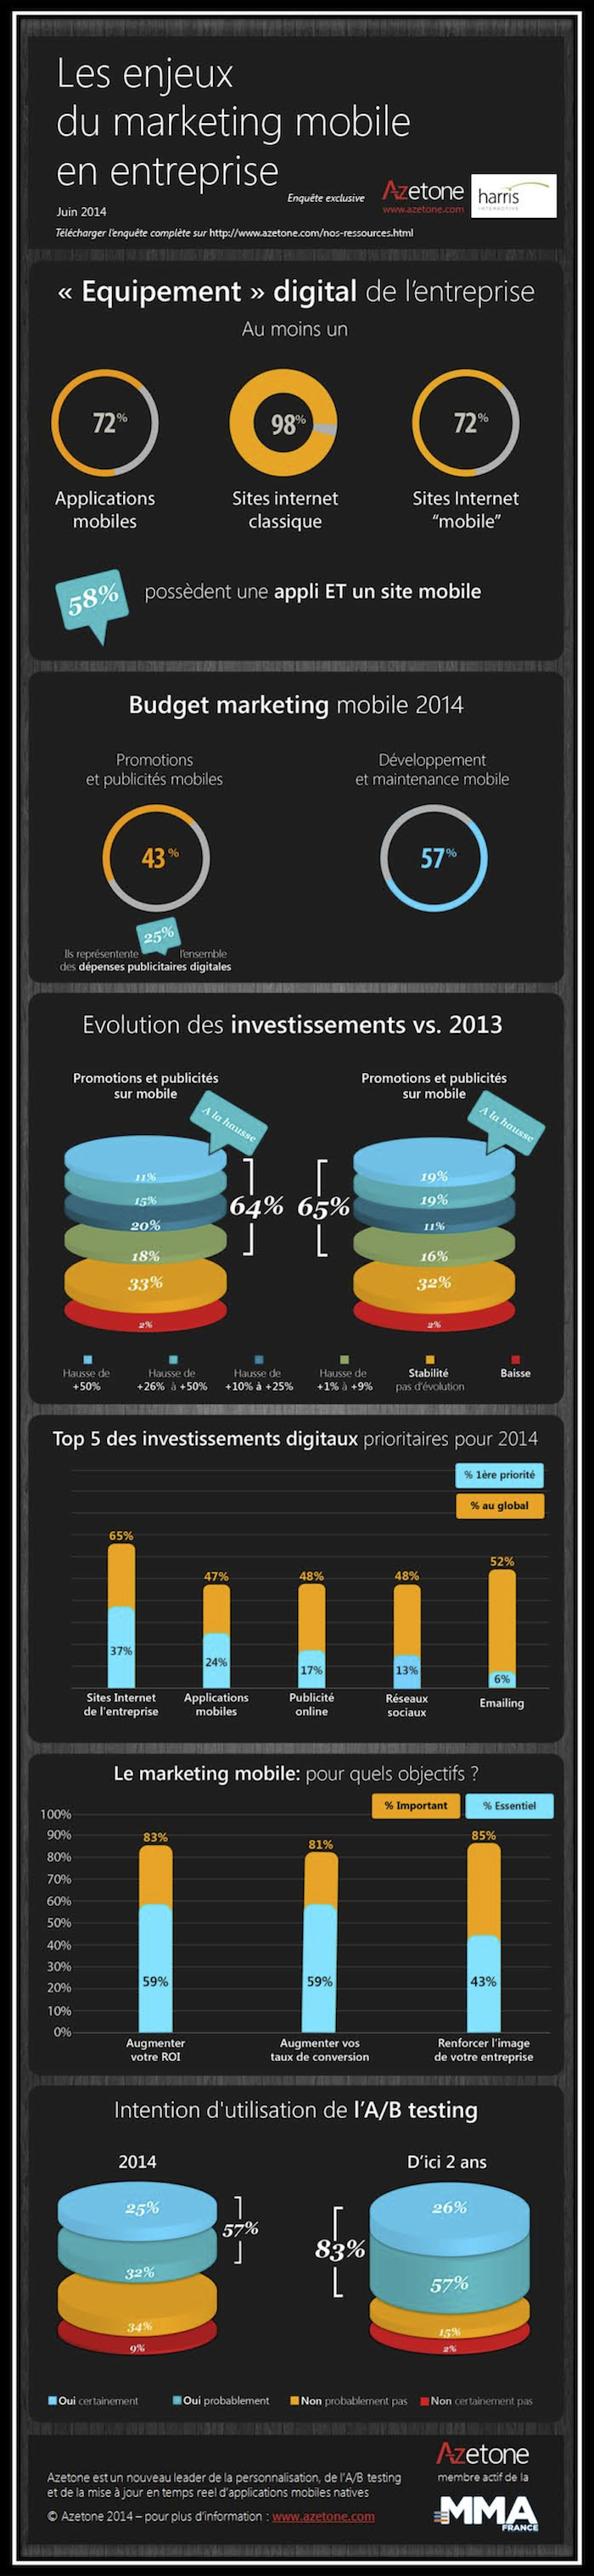 Infographie Les Enjeux Marketing Mobile - Etude Azetone-Harris